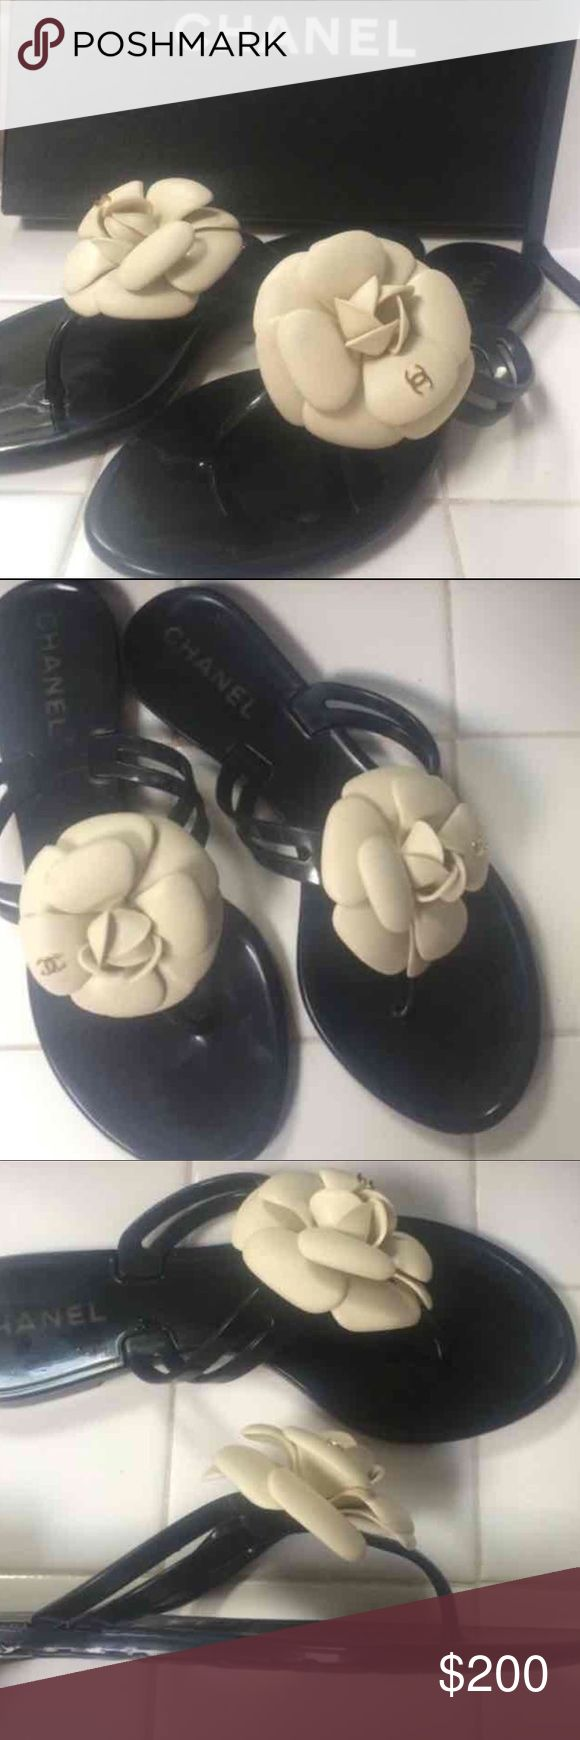 Chanel Camellia Sandals Chanel Camelia Jelly Sandals - gently worn with love still in great condition! CHANEL Shoes Sandals